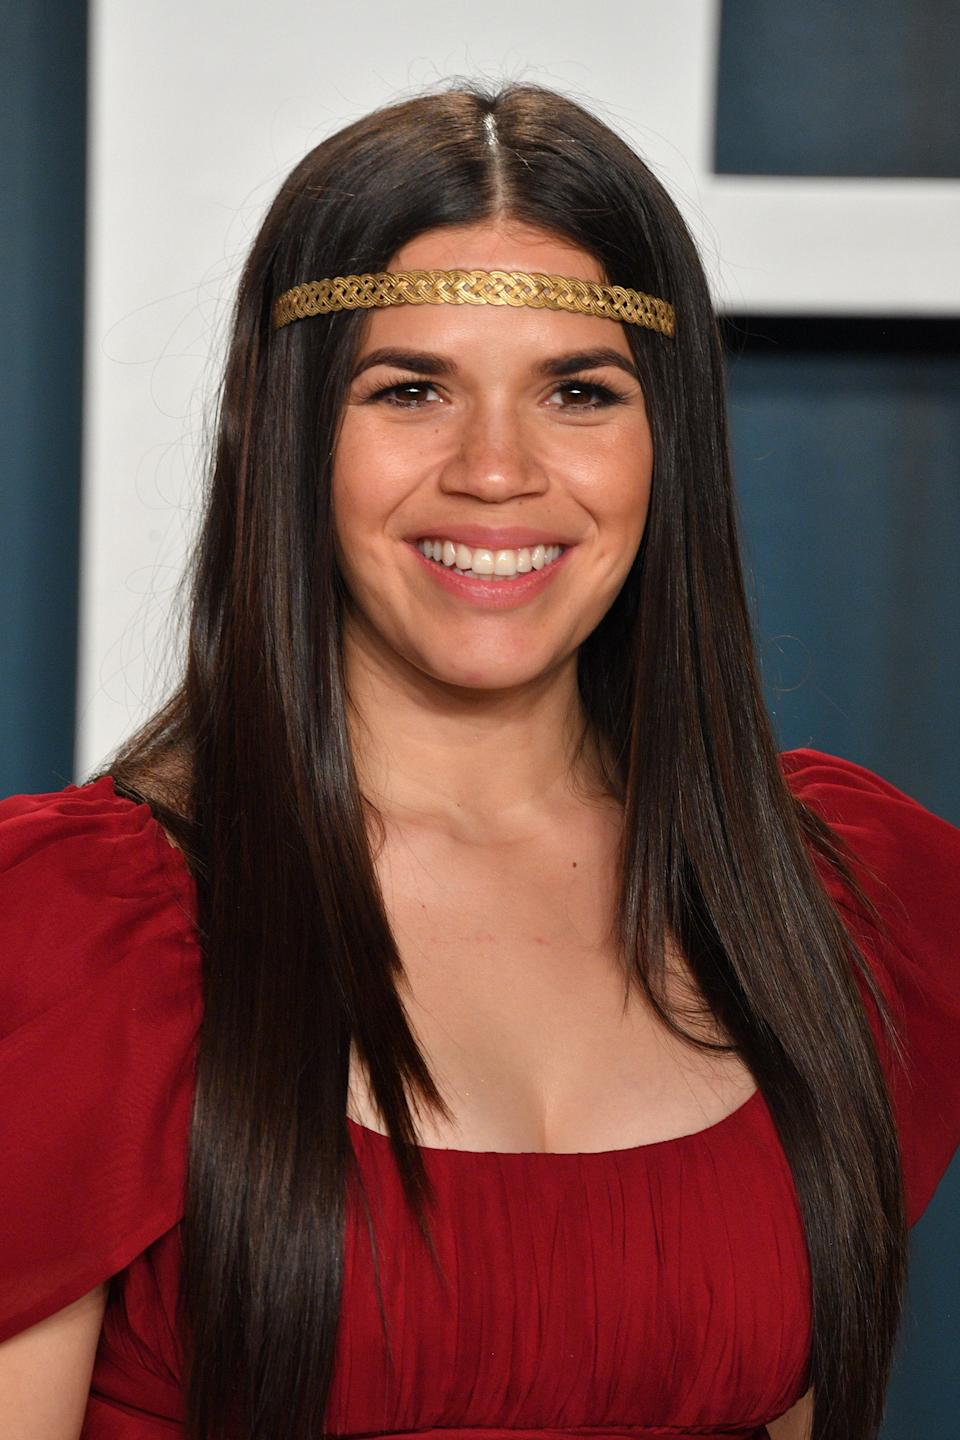 """America Ferrera's custom Jennifer Behr headpiece was more than just icing on top of her red carpet look: The gilded accessory worn across her forehead was <a href=""""https://www.refinery29.com/en-us/2020/02/9383562/america-ferrera-oscars-headband-honduras-warrior-meaning"""" rel=""""nofollow noopener"""" target=""""_blank"""" data-ylk=""""slk:a nod to her Honduran roots"""" class=""""link rapid-noclick-resp"""">a nod to her Honduran roots</a>. <span class=""""copyright"""">Photo: George Pimentel/Getty Images.</span>"""